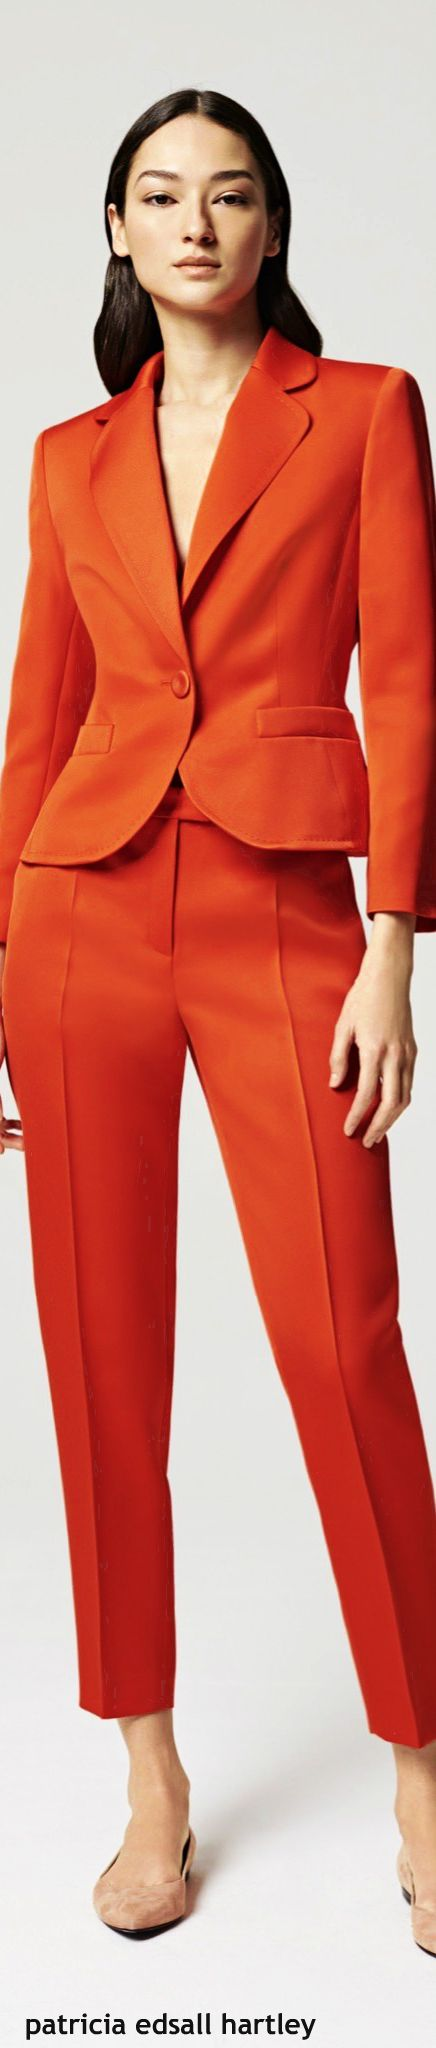 Escada resort 2016 orange suit women fashion outfit clothing style